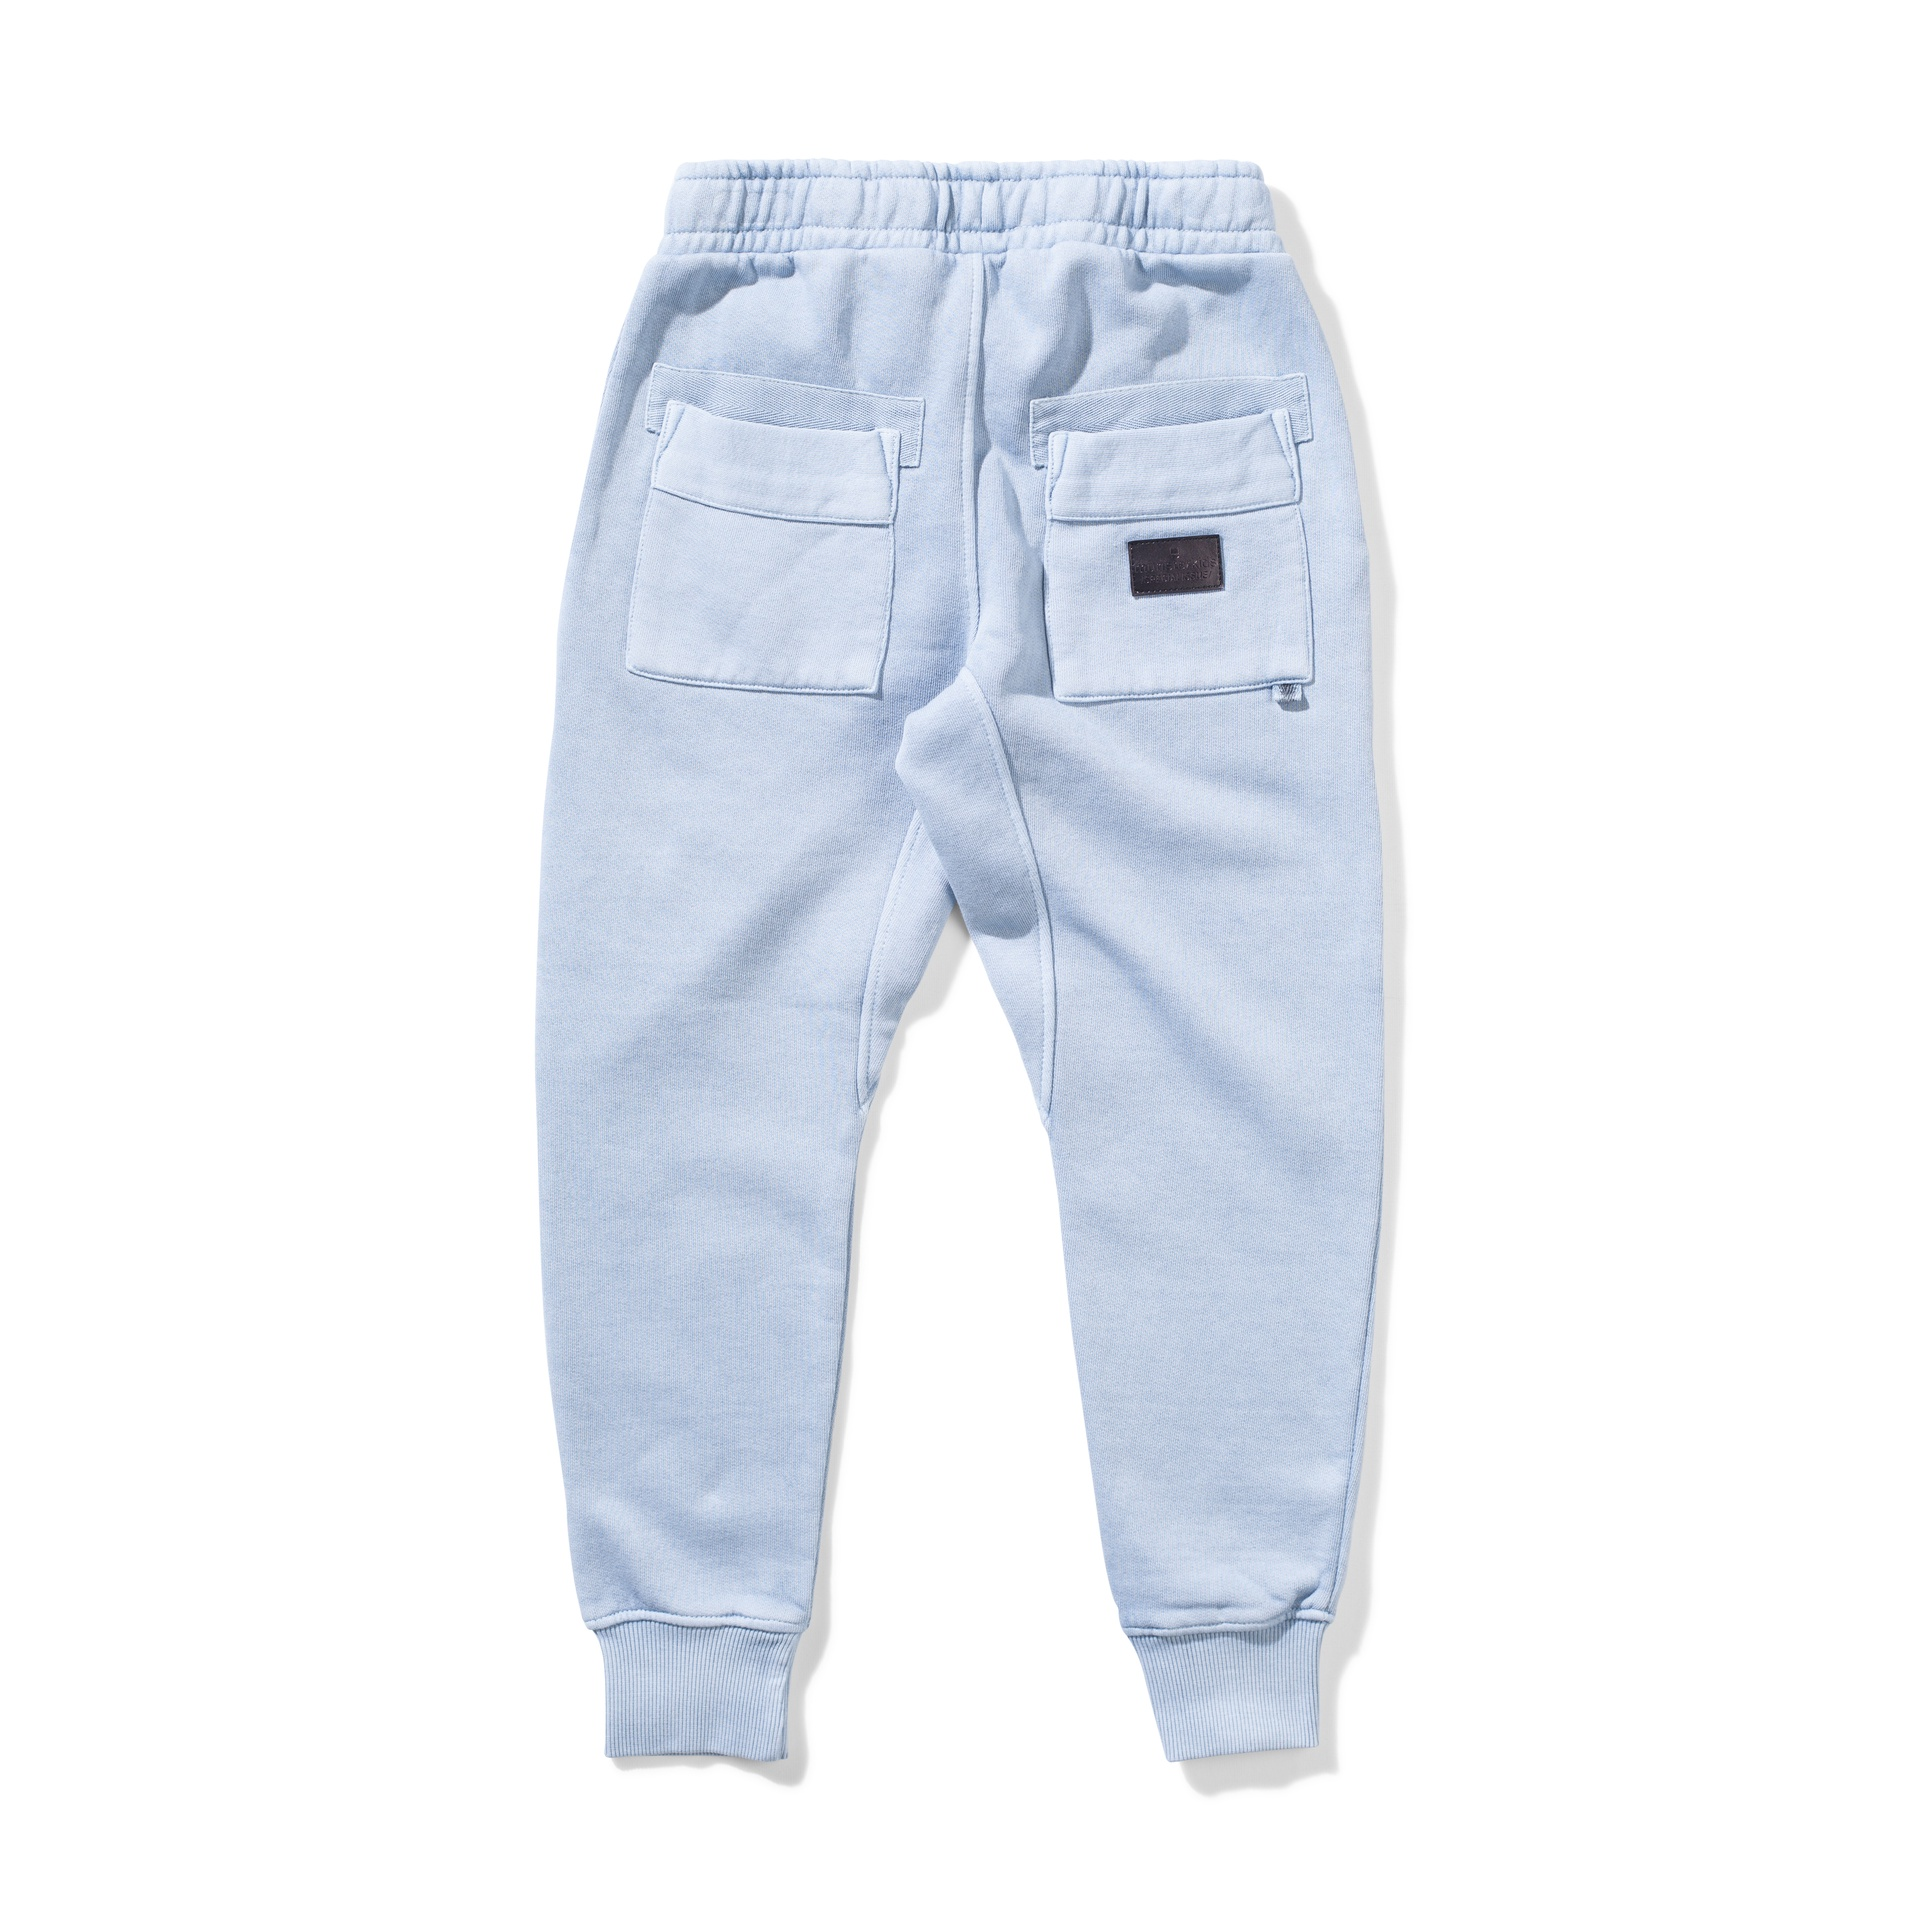 Munster Daynight 2 Pant (pigment mid blue)